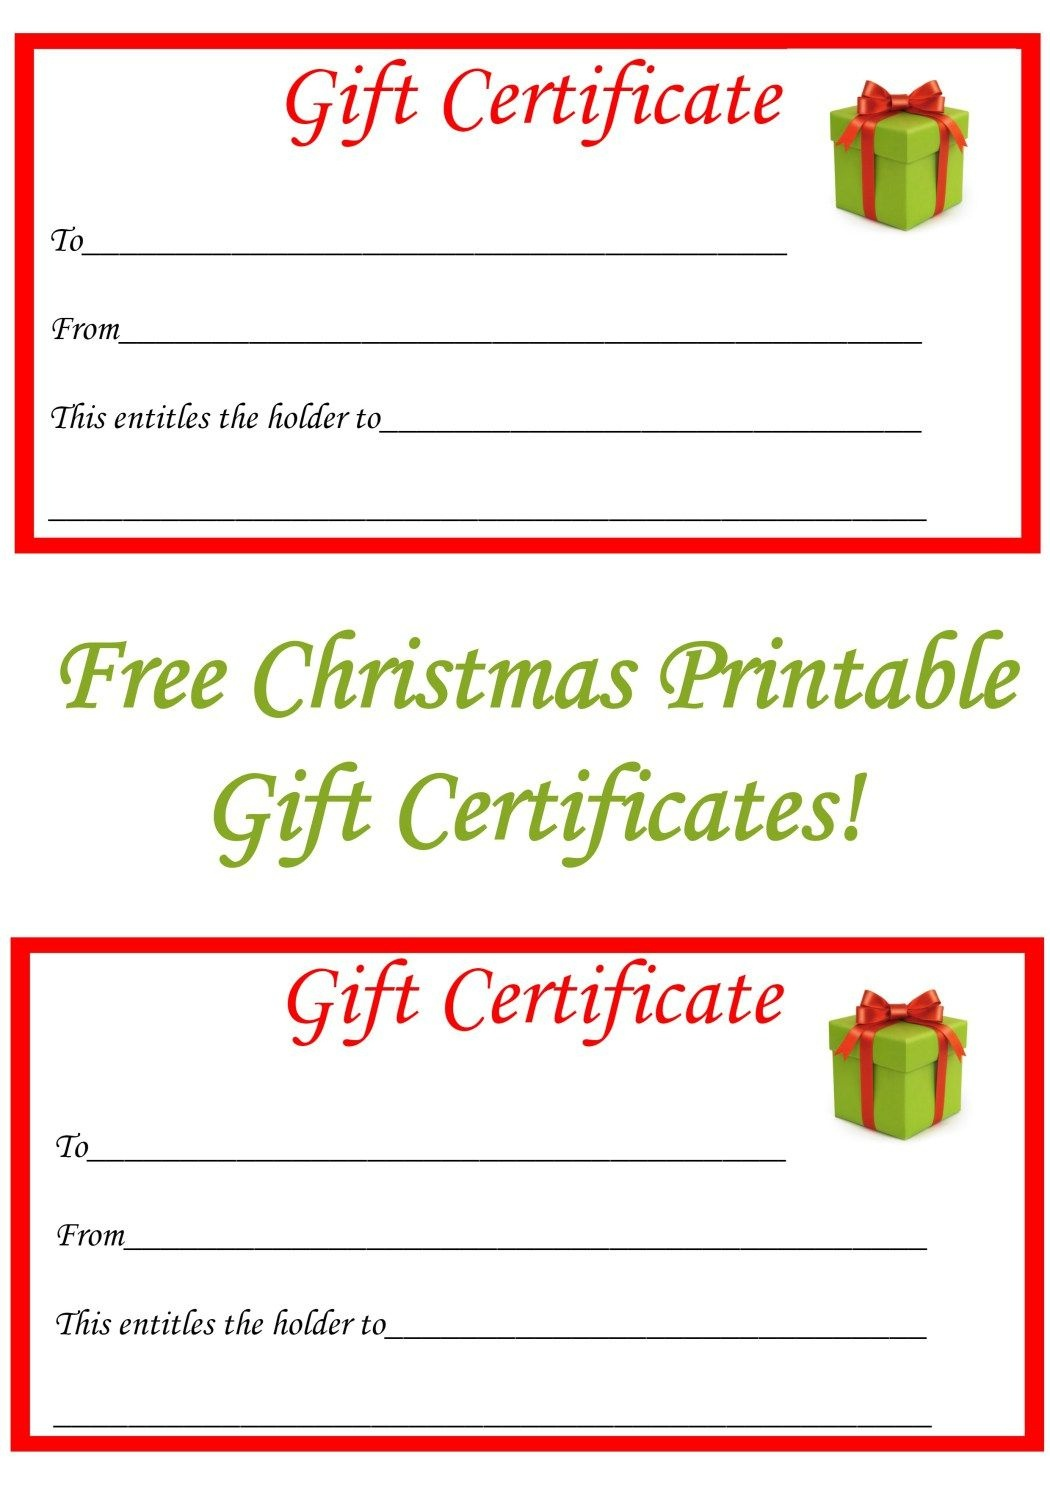 Free Christmas Printable Gift Certificates | Gift Ideas | Christmas - Free Printable Massage Gift Certificate Templates